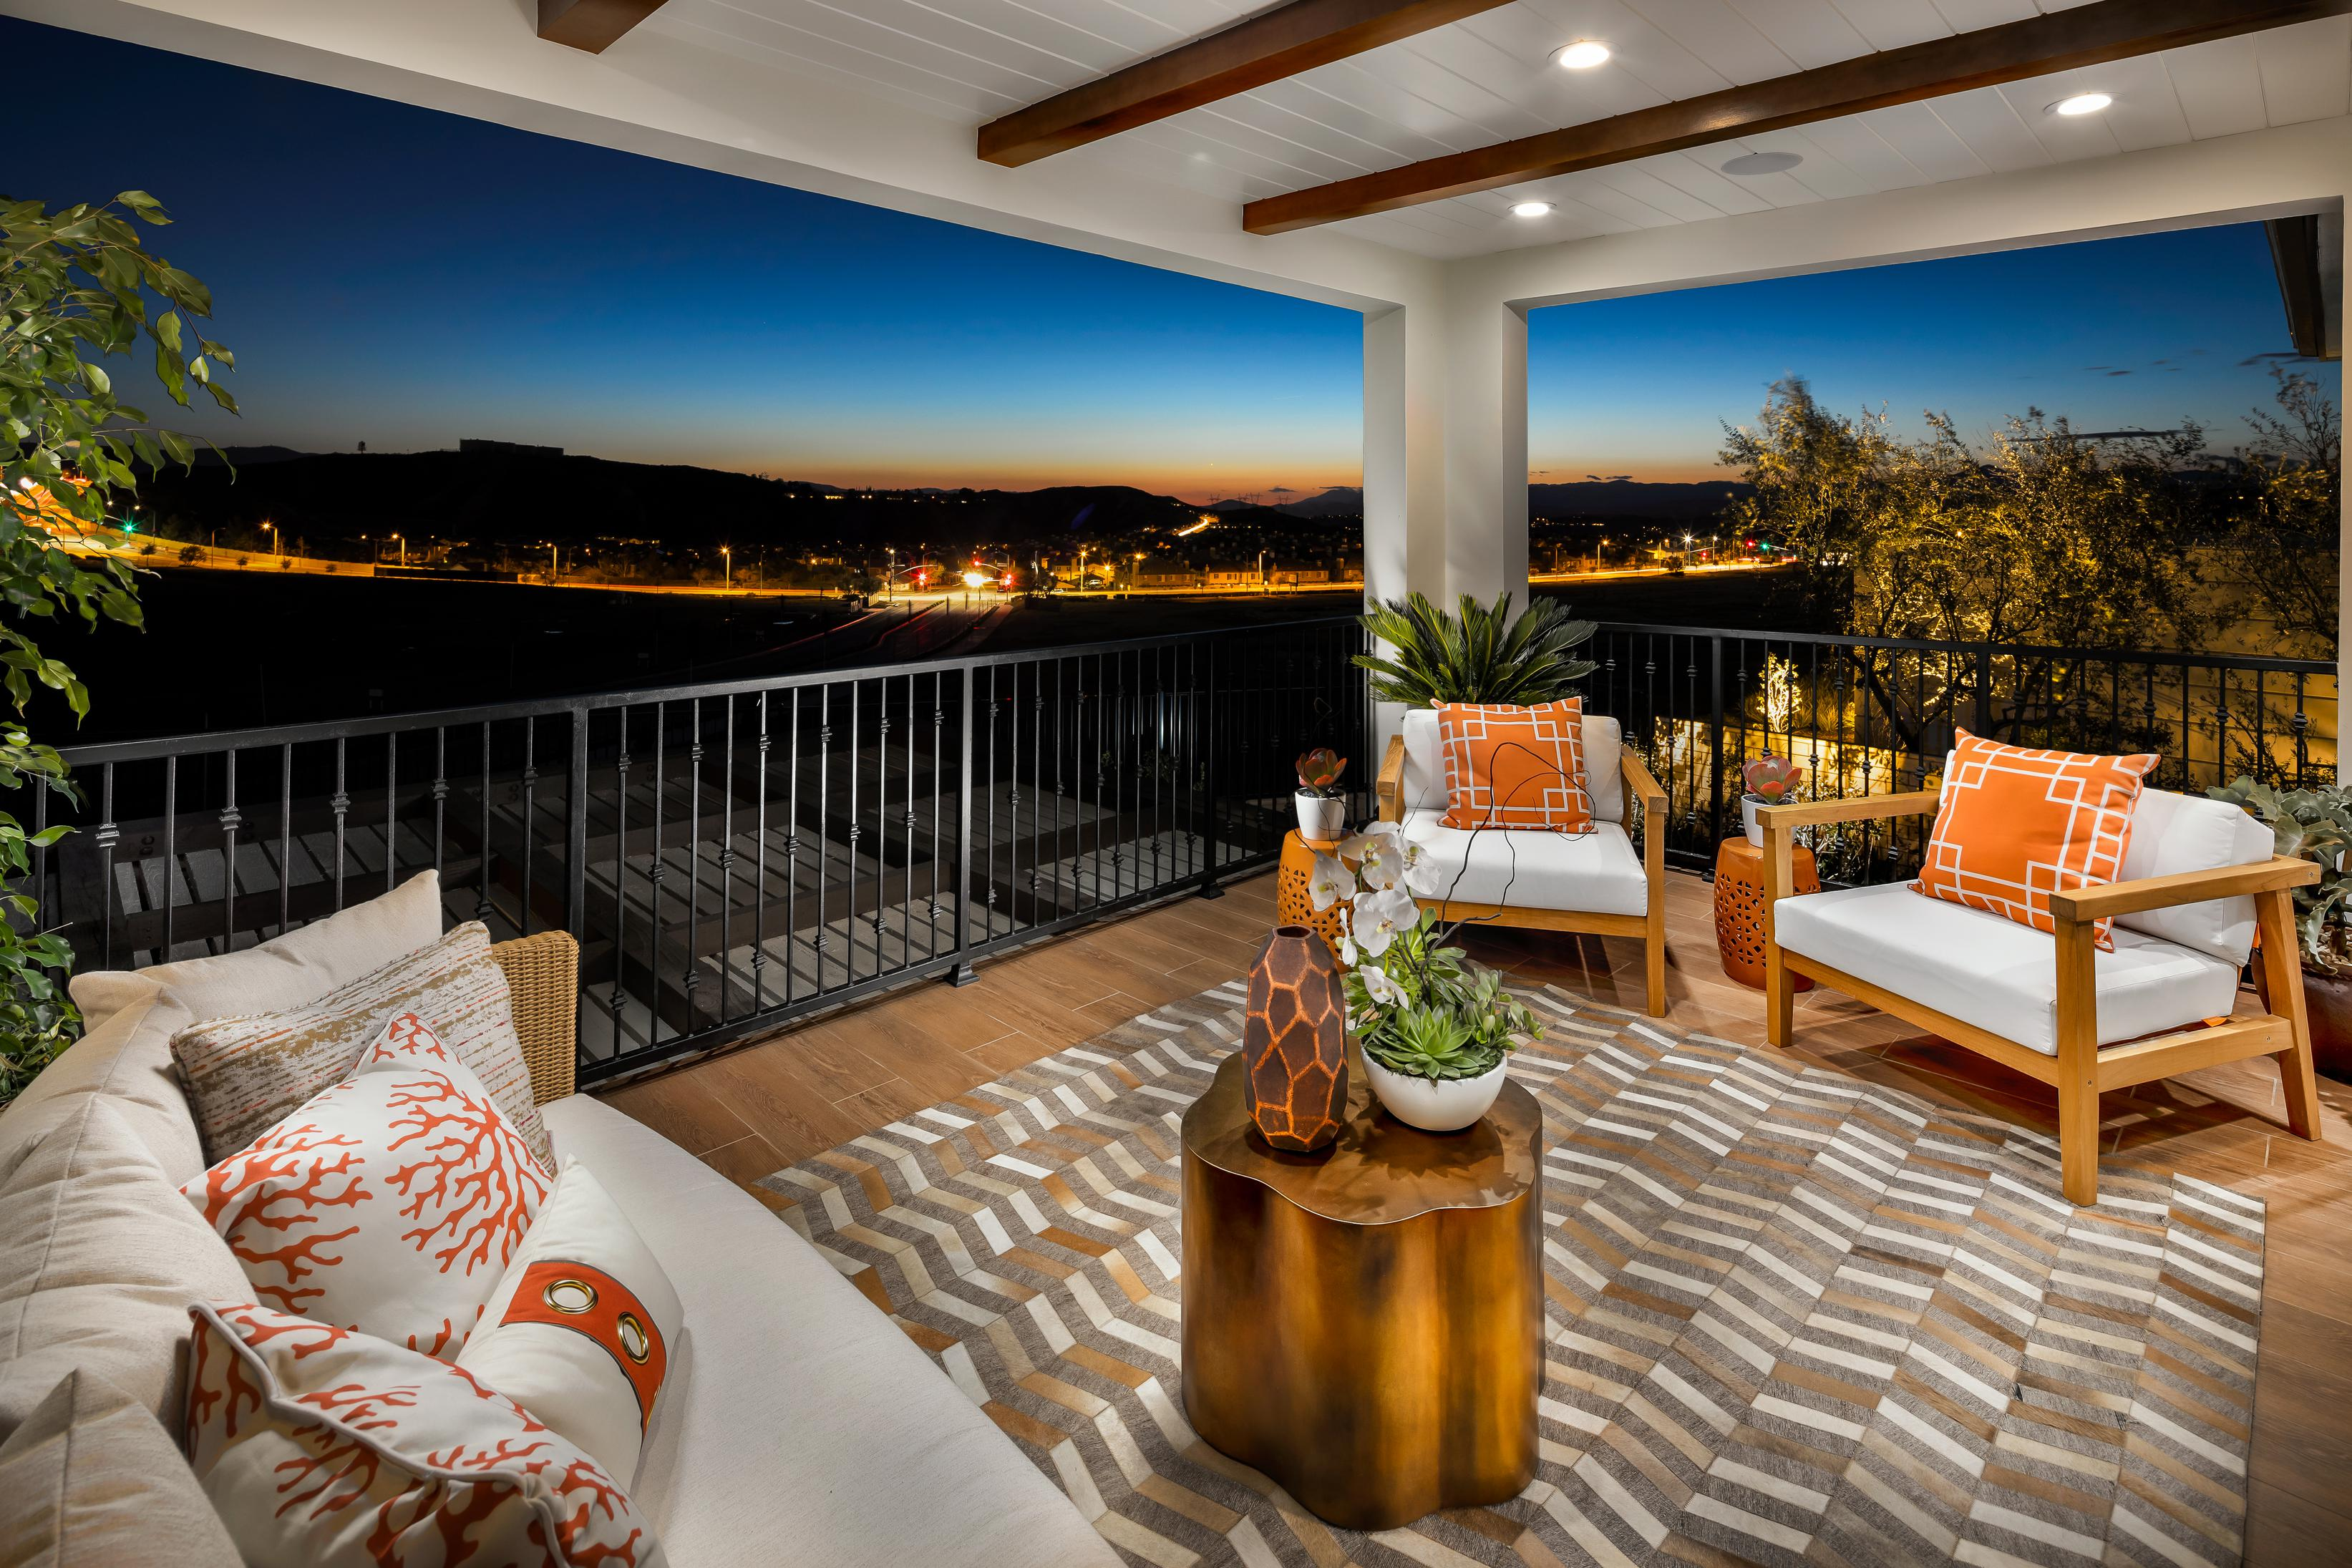 Breathtaking outdoor living area with comfortable seating and panoramic view of the surrounding environment.